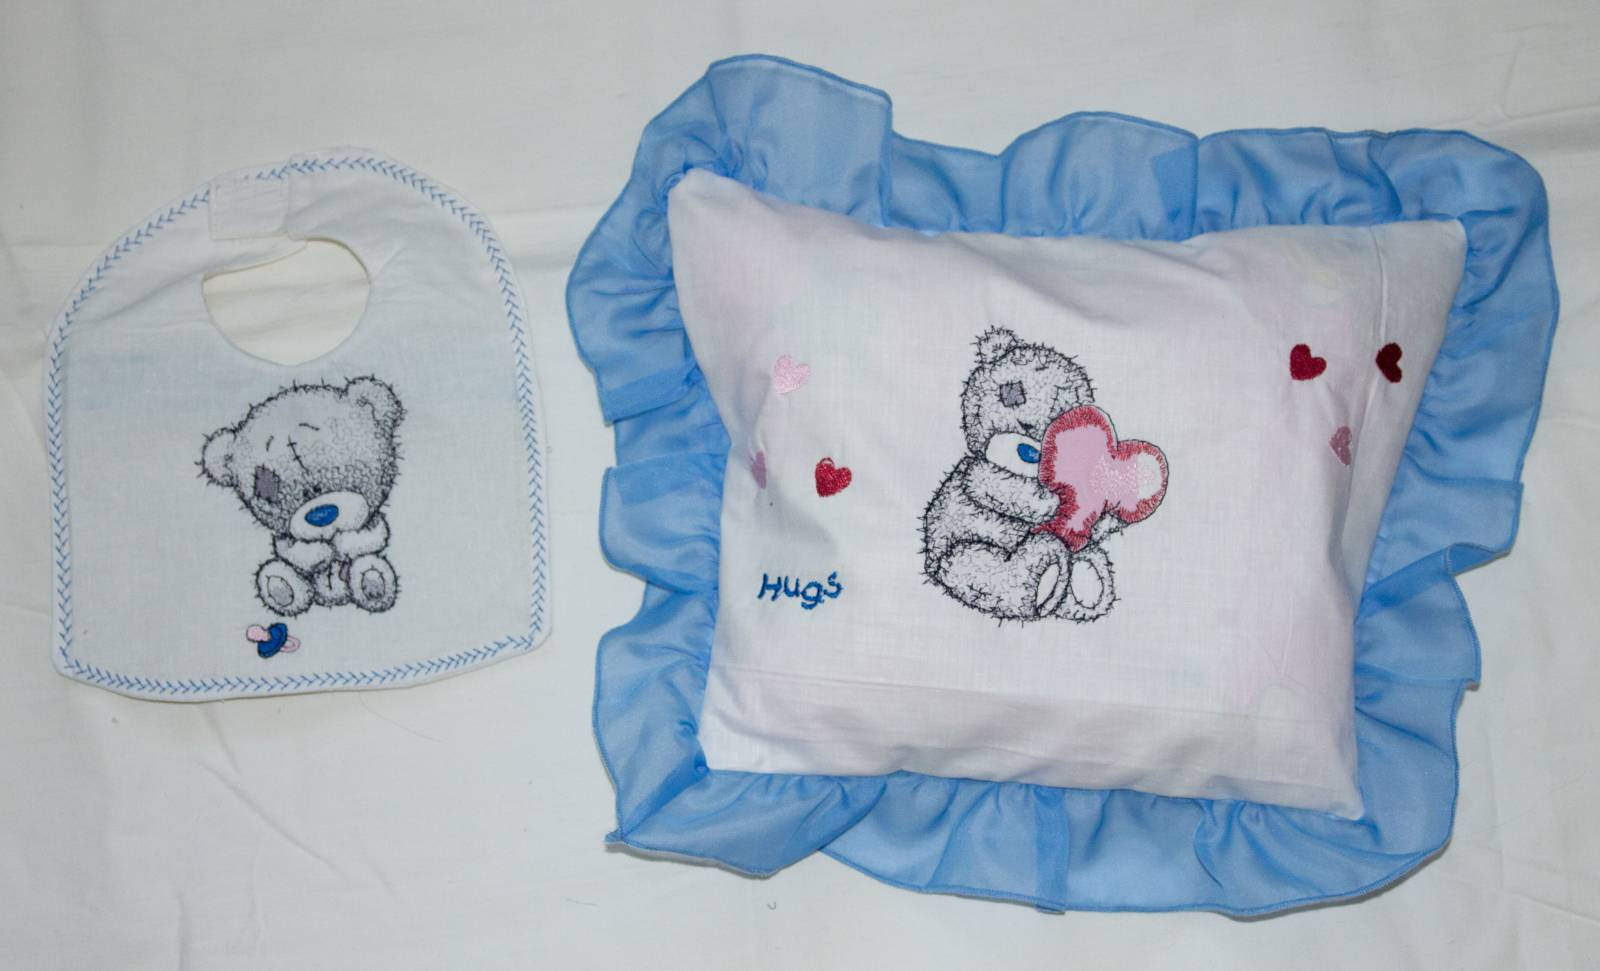 Blue nose bear embroidered on pillowcase and baby bib